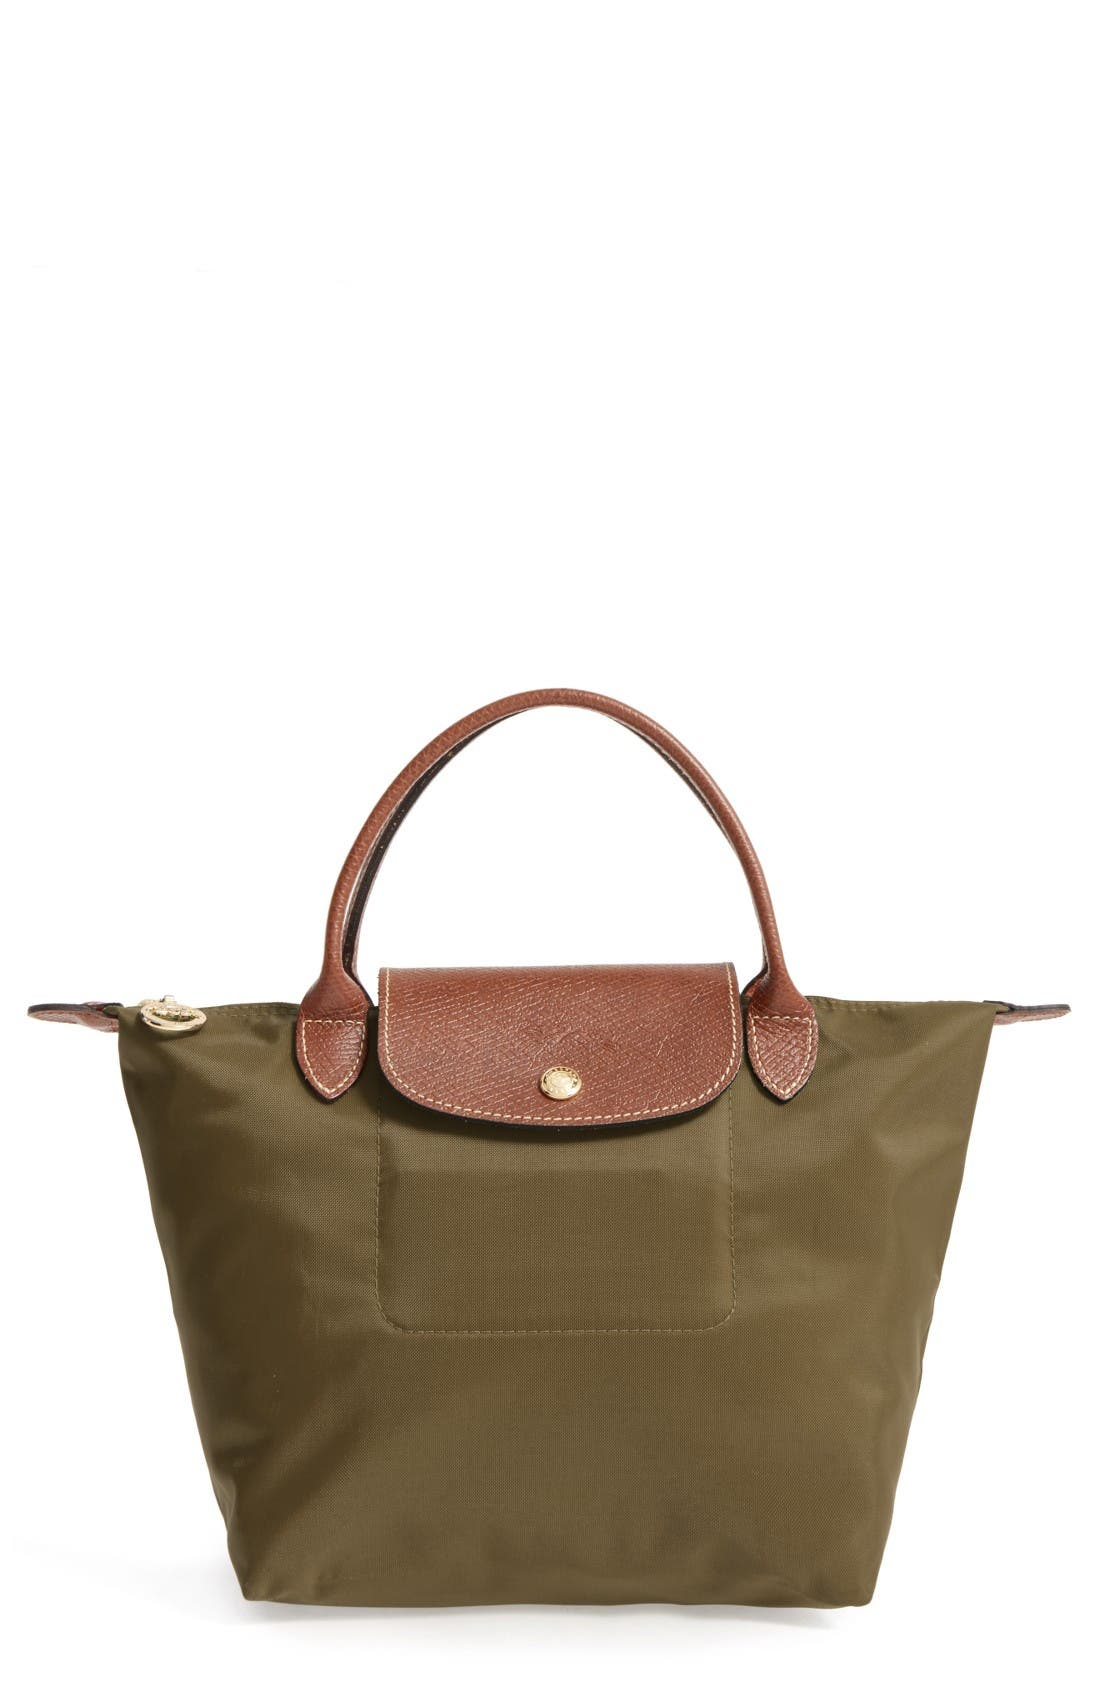 LONGCHAMP Mini Le Pliage Handbag